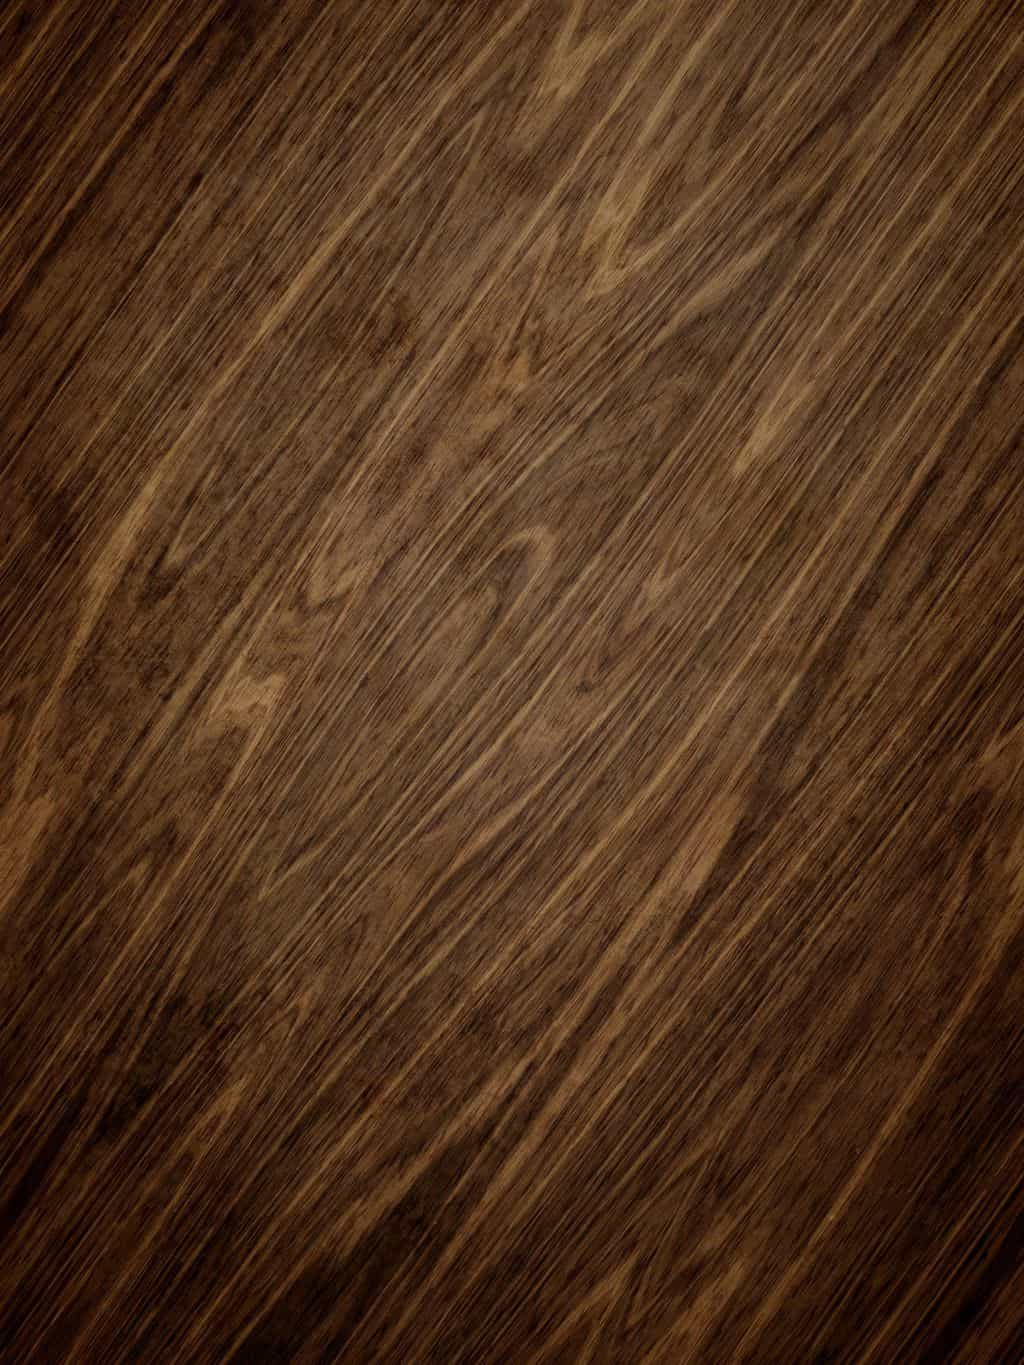 Types of laminate flooring options oak walnut pine for Laminate flooring choices